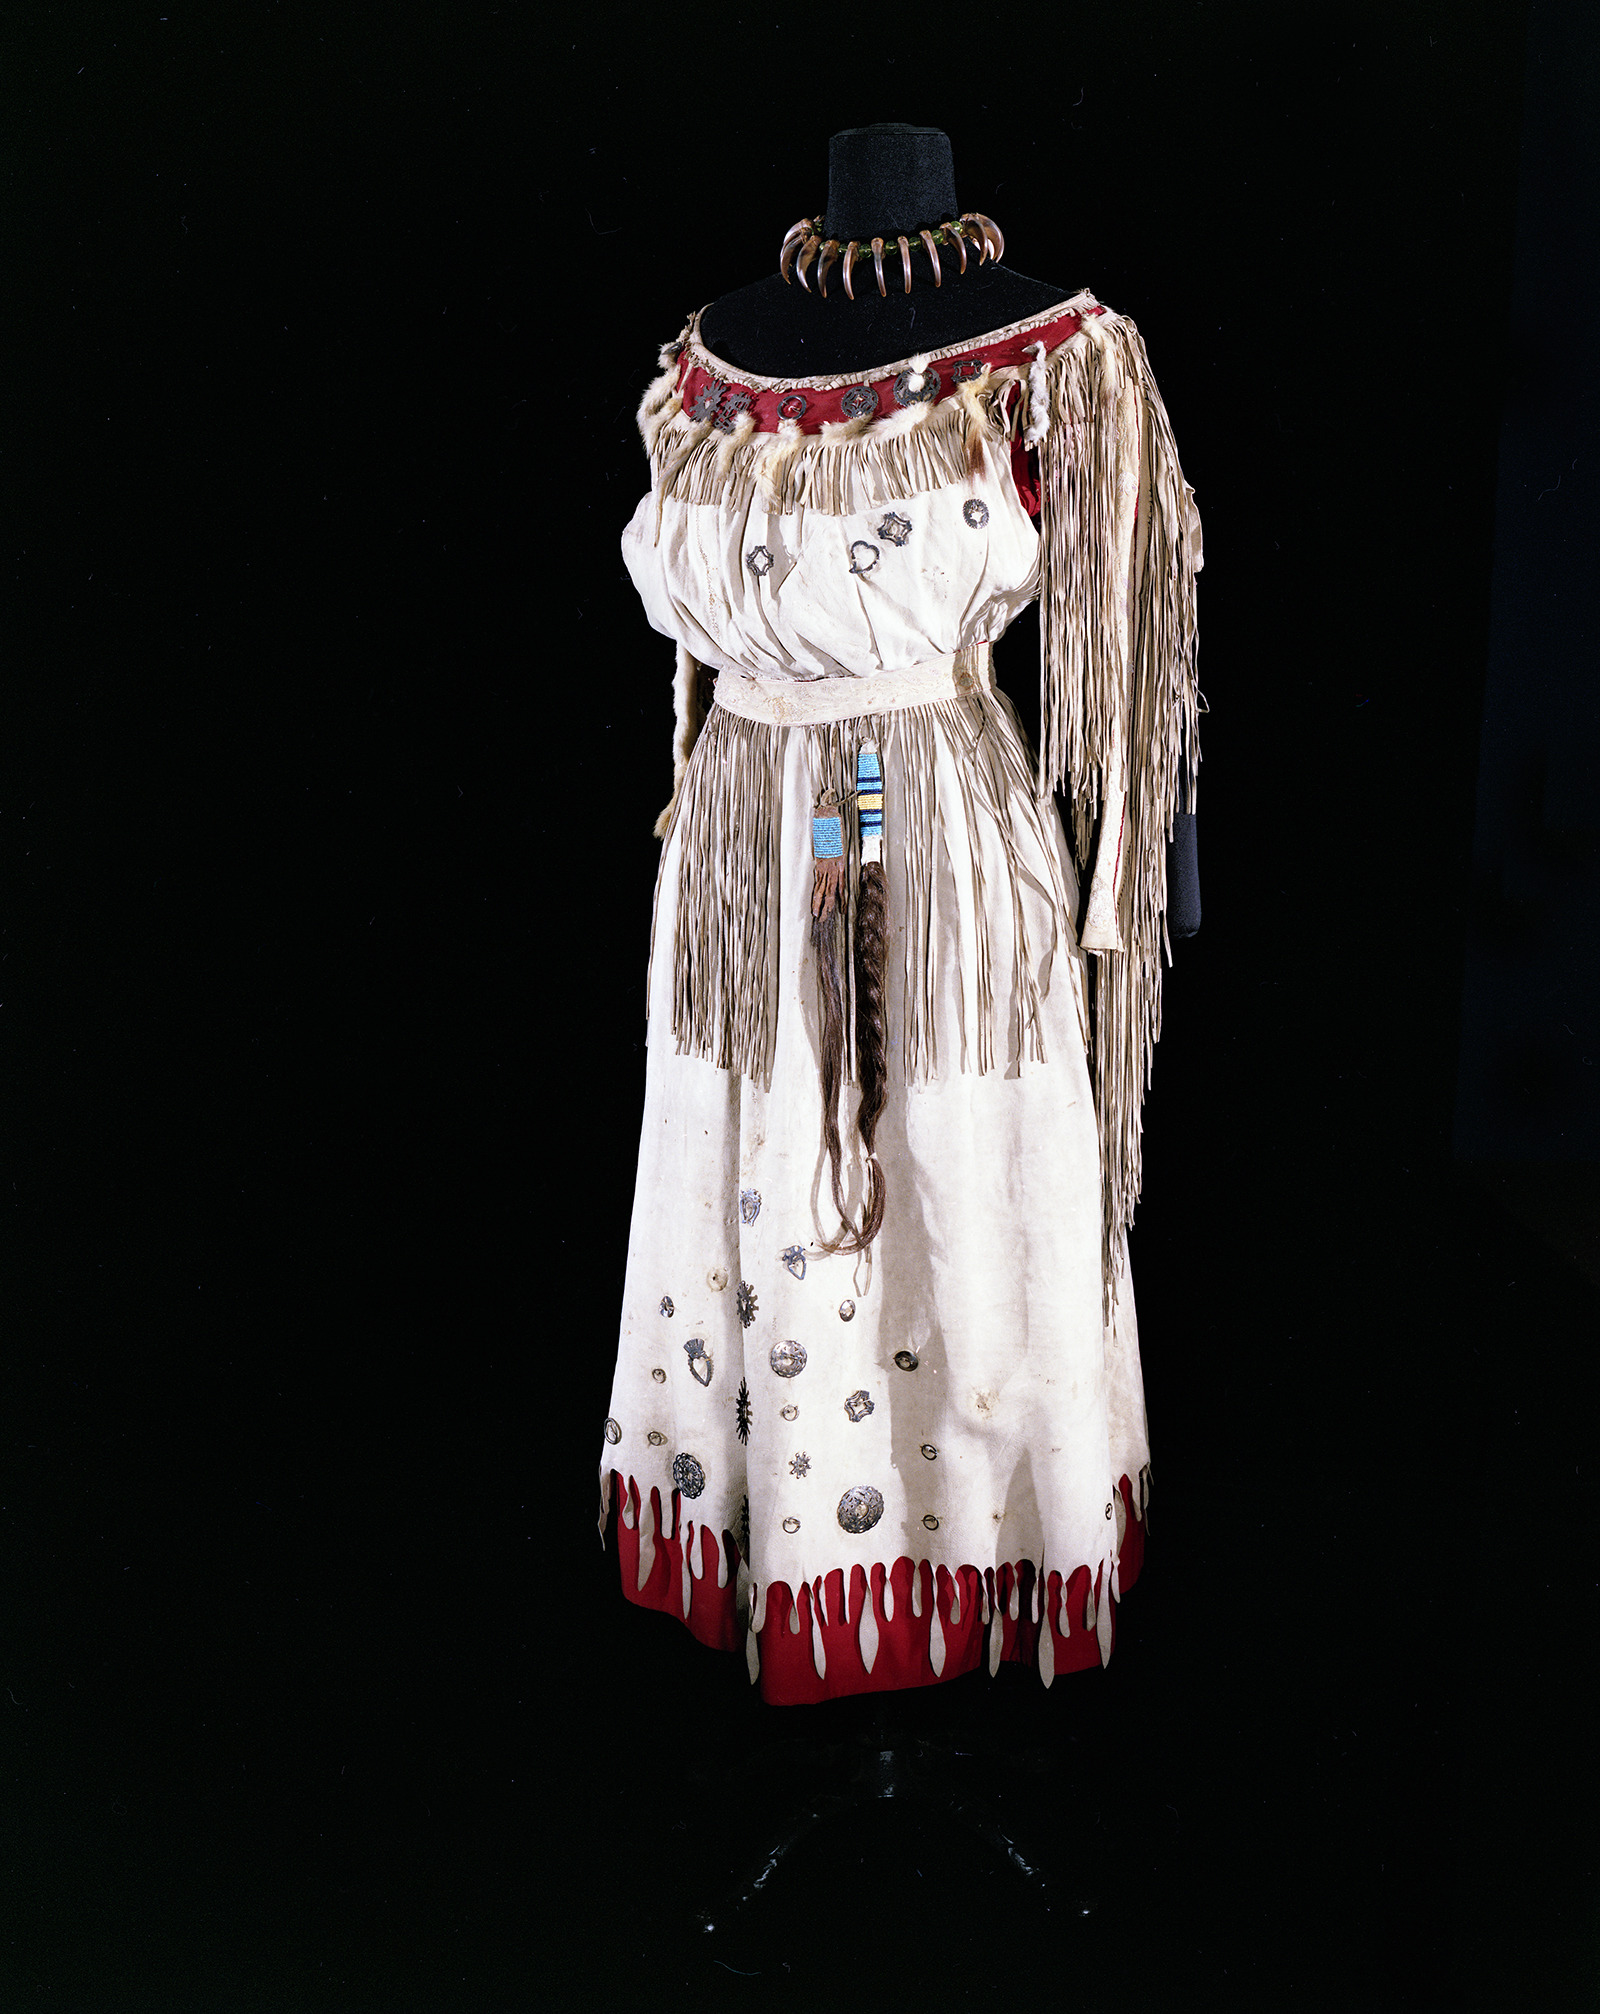 Pauline Johnson's performance dress